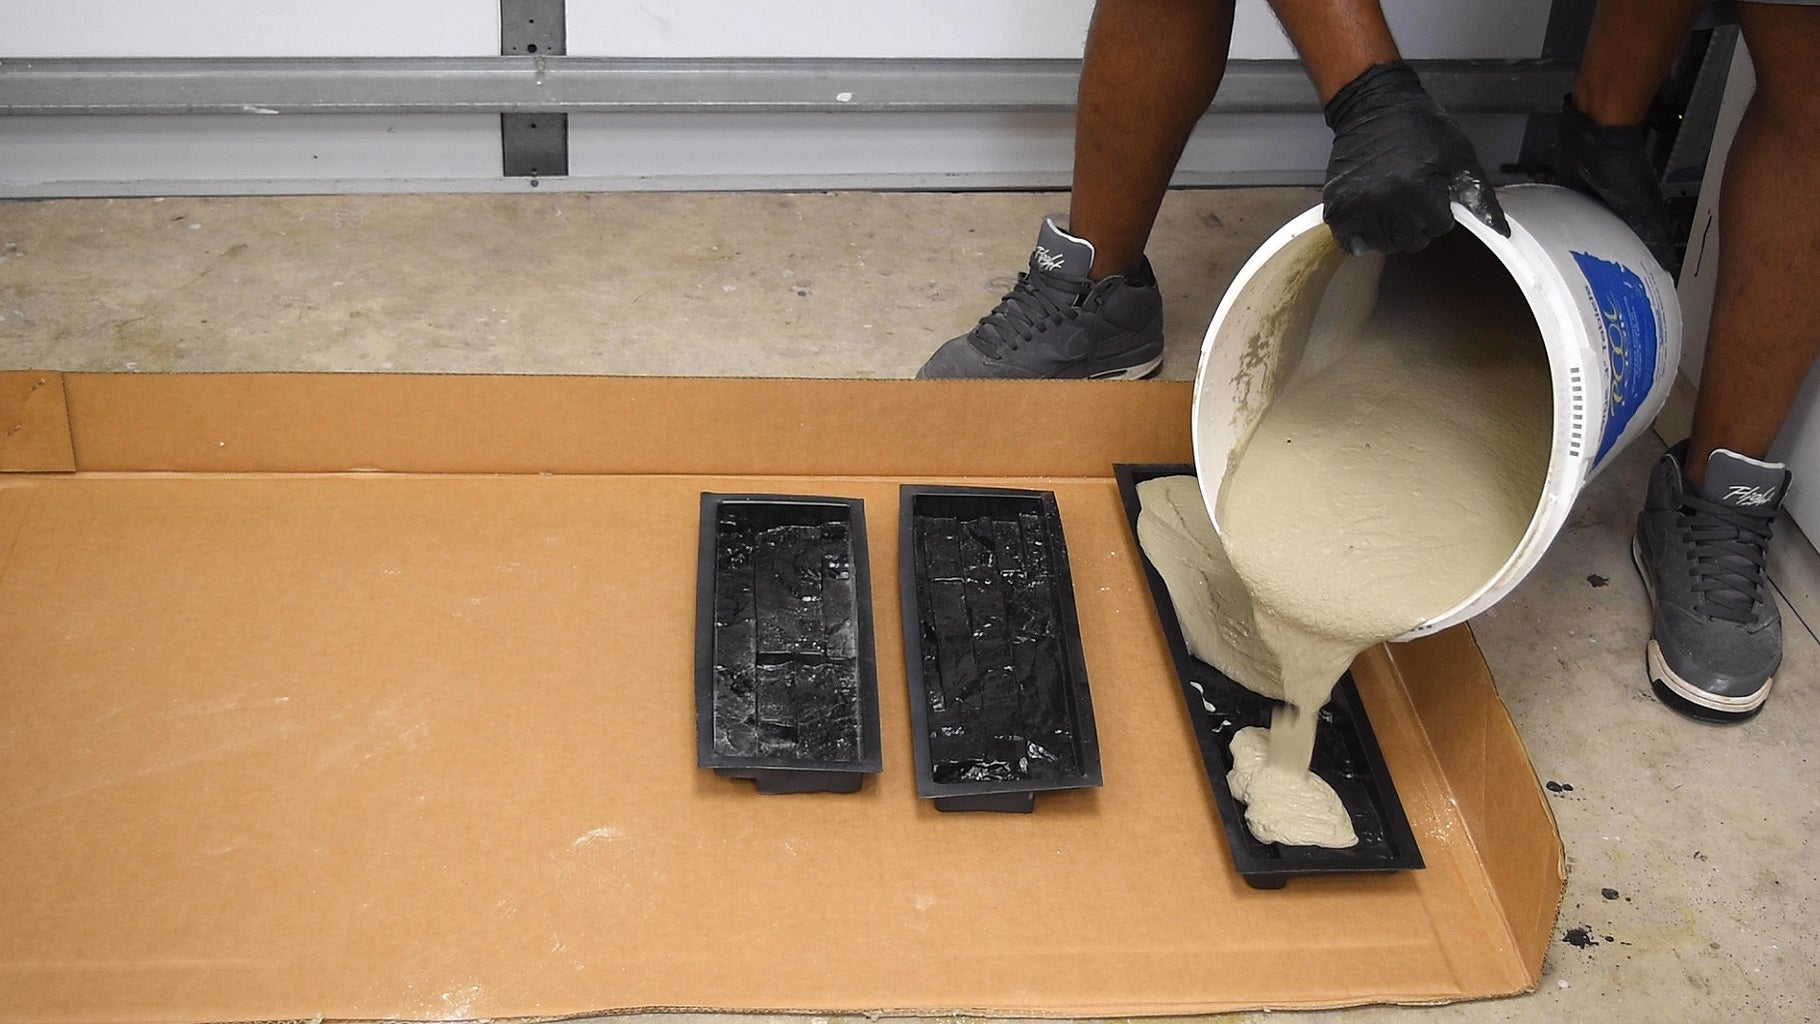 Pouring Cement Into the Molds